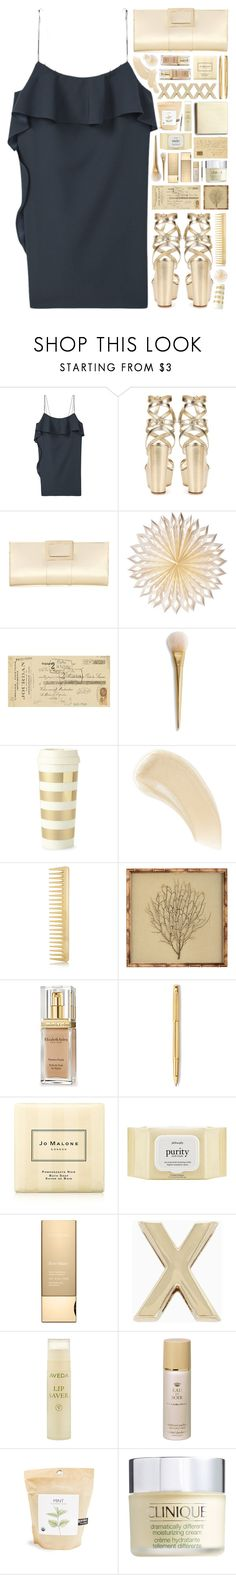 """""""2179 // Z i r c o n"""" by ritaof ❤ liked on Polyvore featuring MANGO, Gianvito Rossi, Roger Vivier, Cultural Intrigue, Art Classics, Kate Spade, Ilia, AERIN, Mirror Image Home and Elizabeth Arden"""